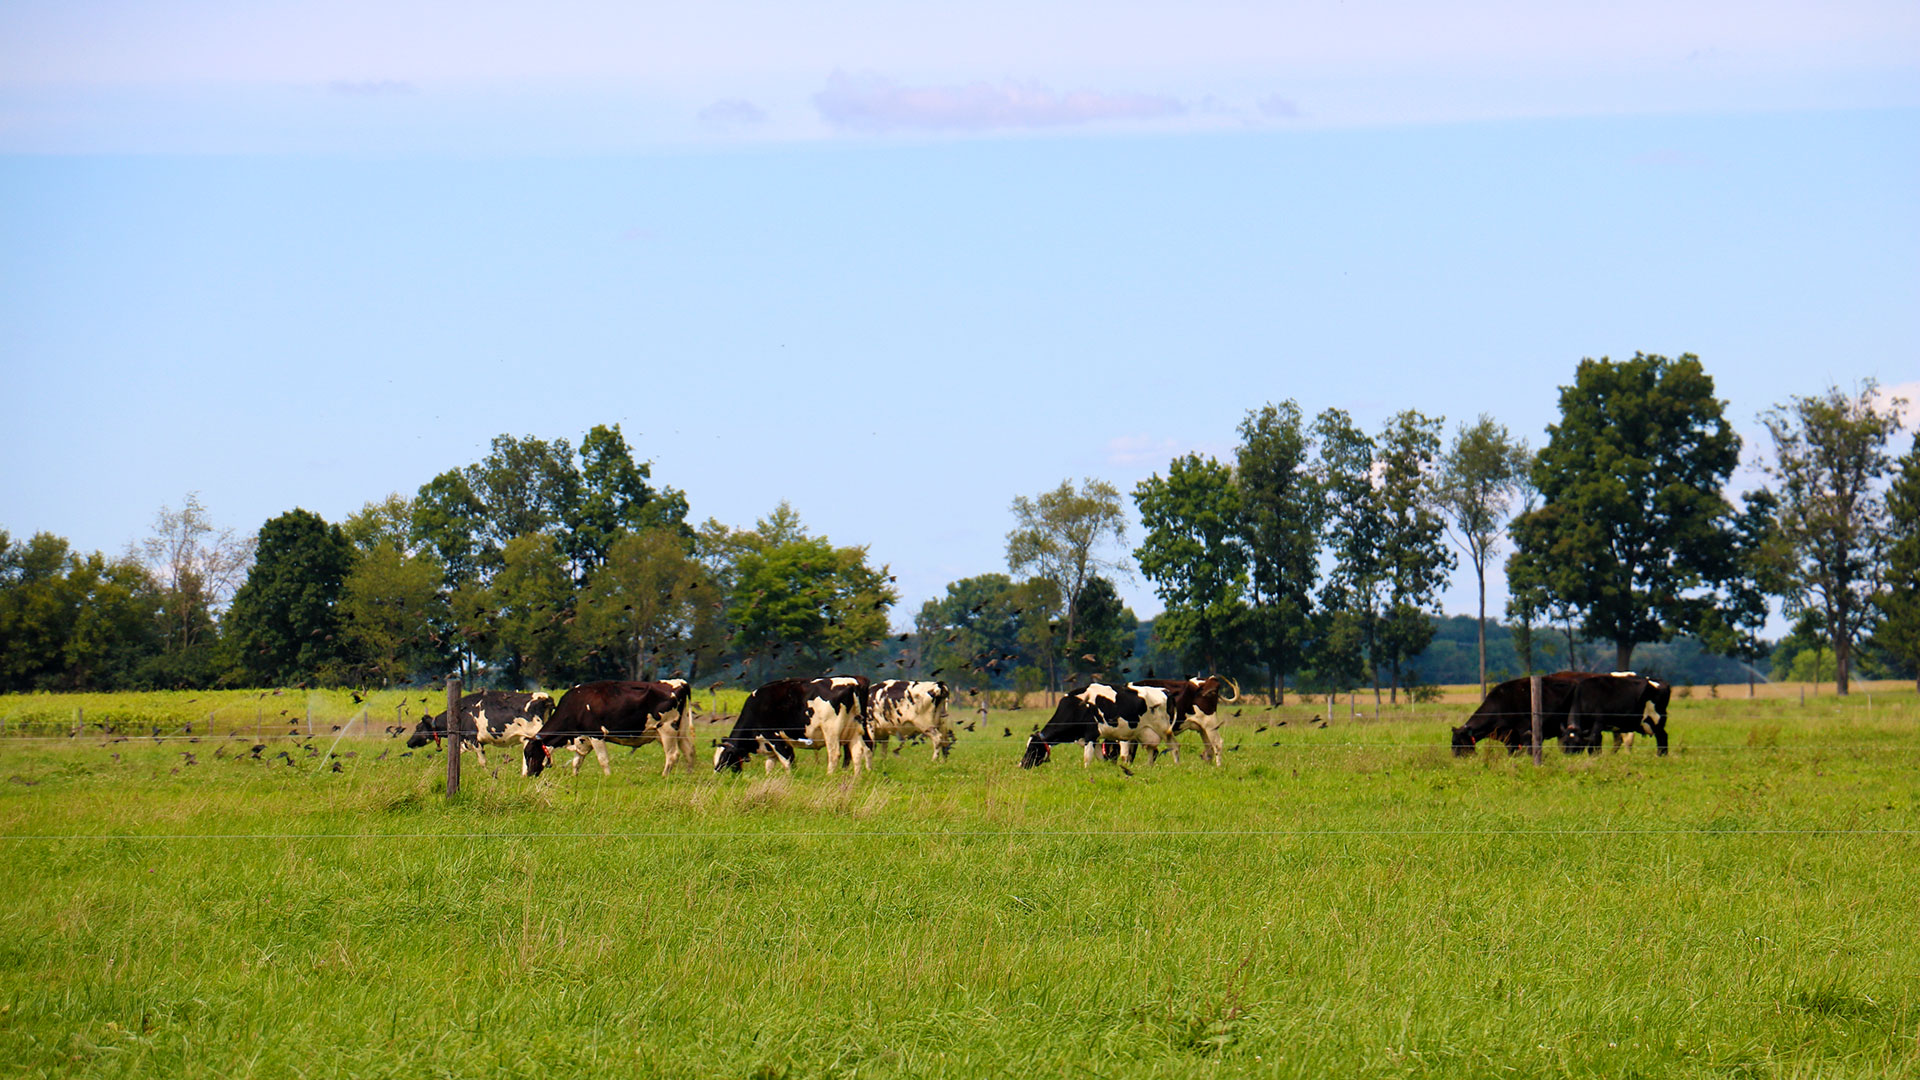 Cows and blackbirds in a pasture at KBS.